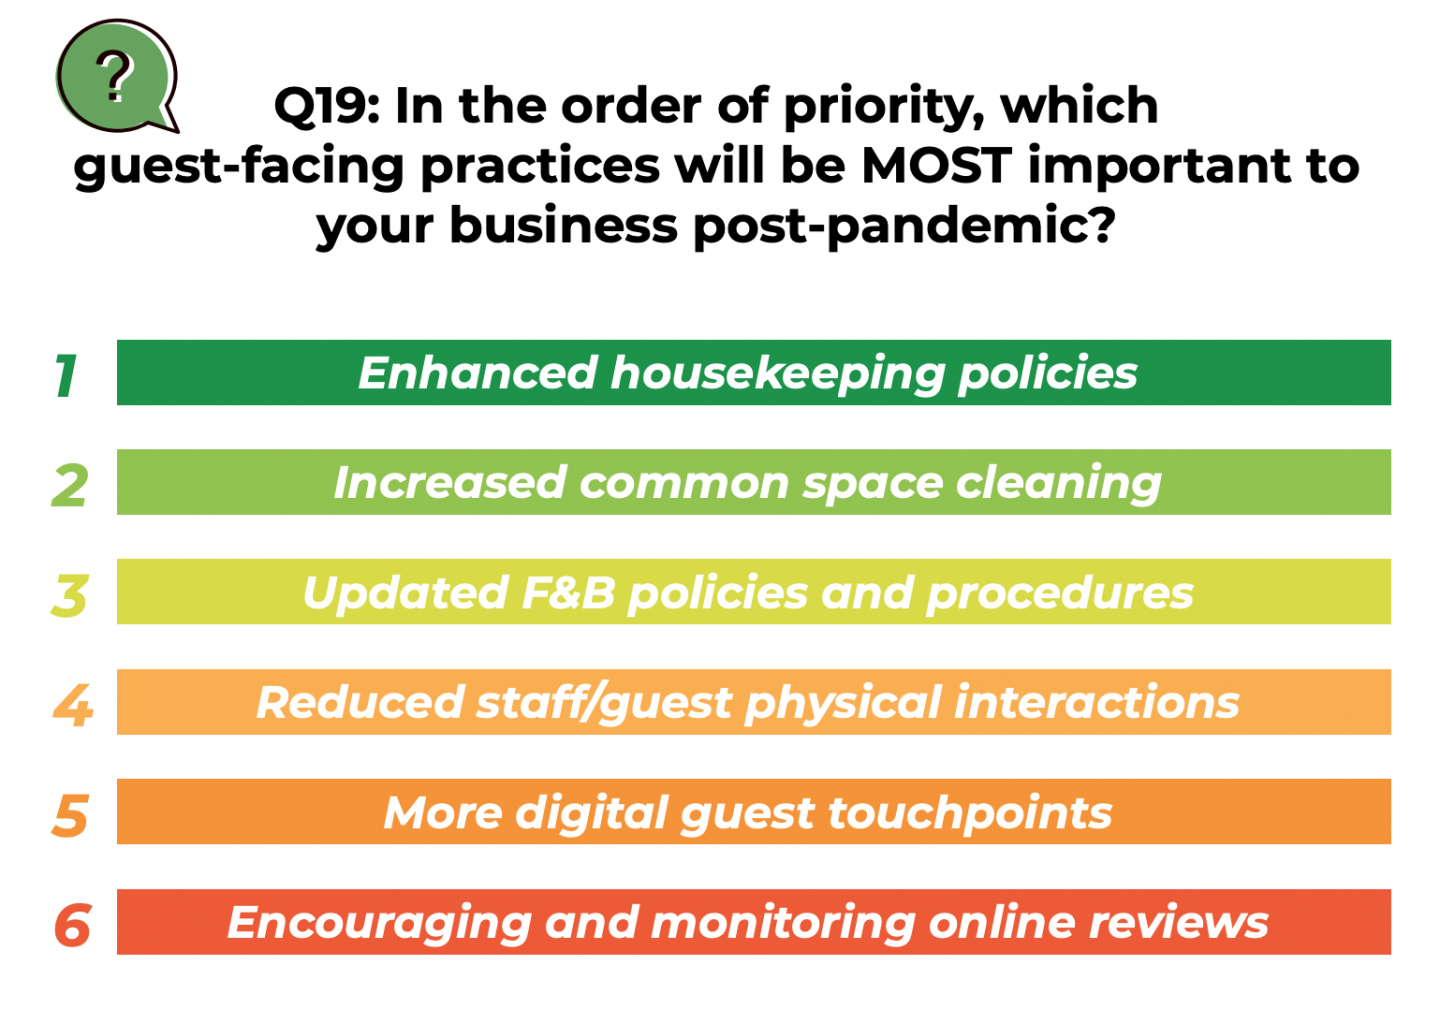 Which guest-facing practices will be MOST important to your business post-pandemic?